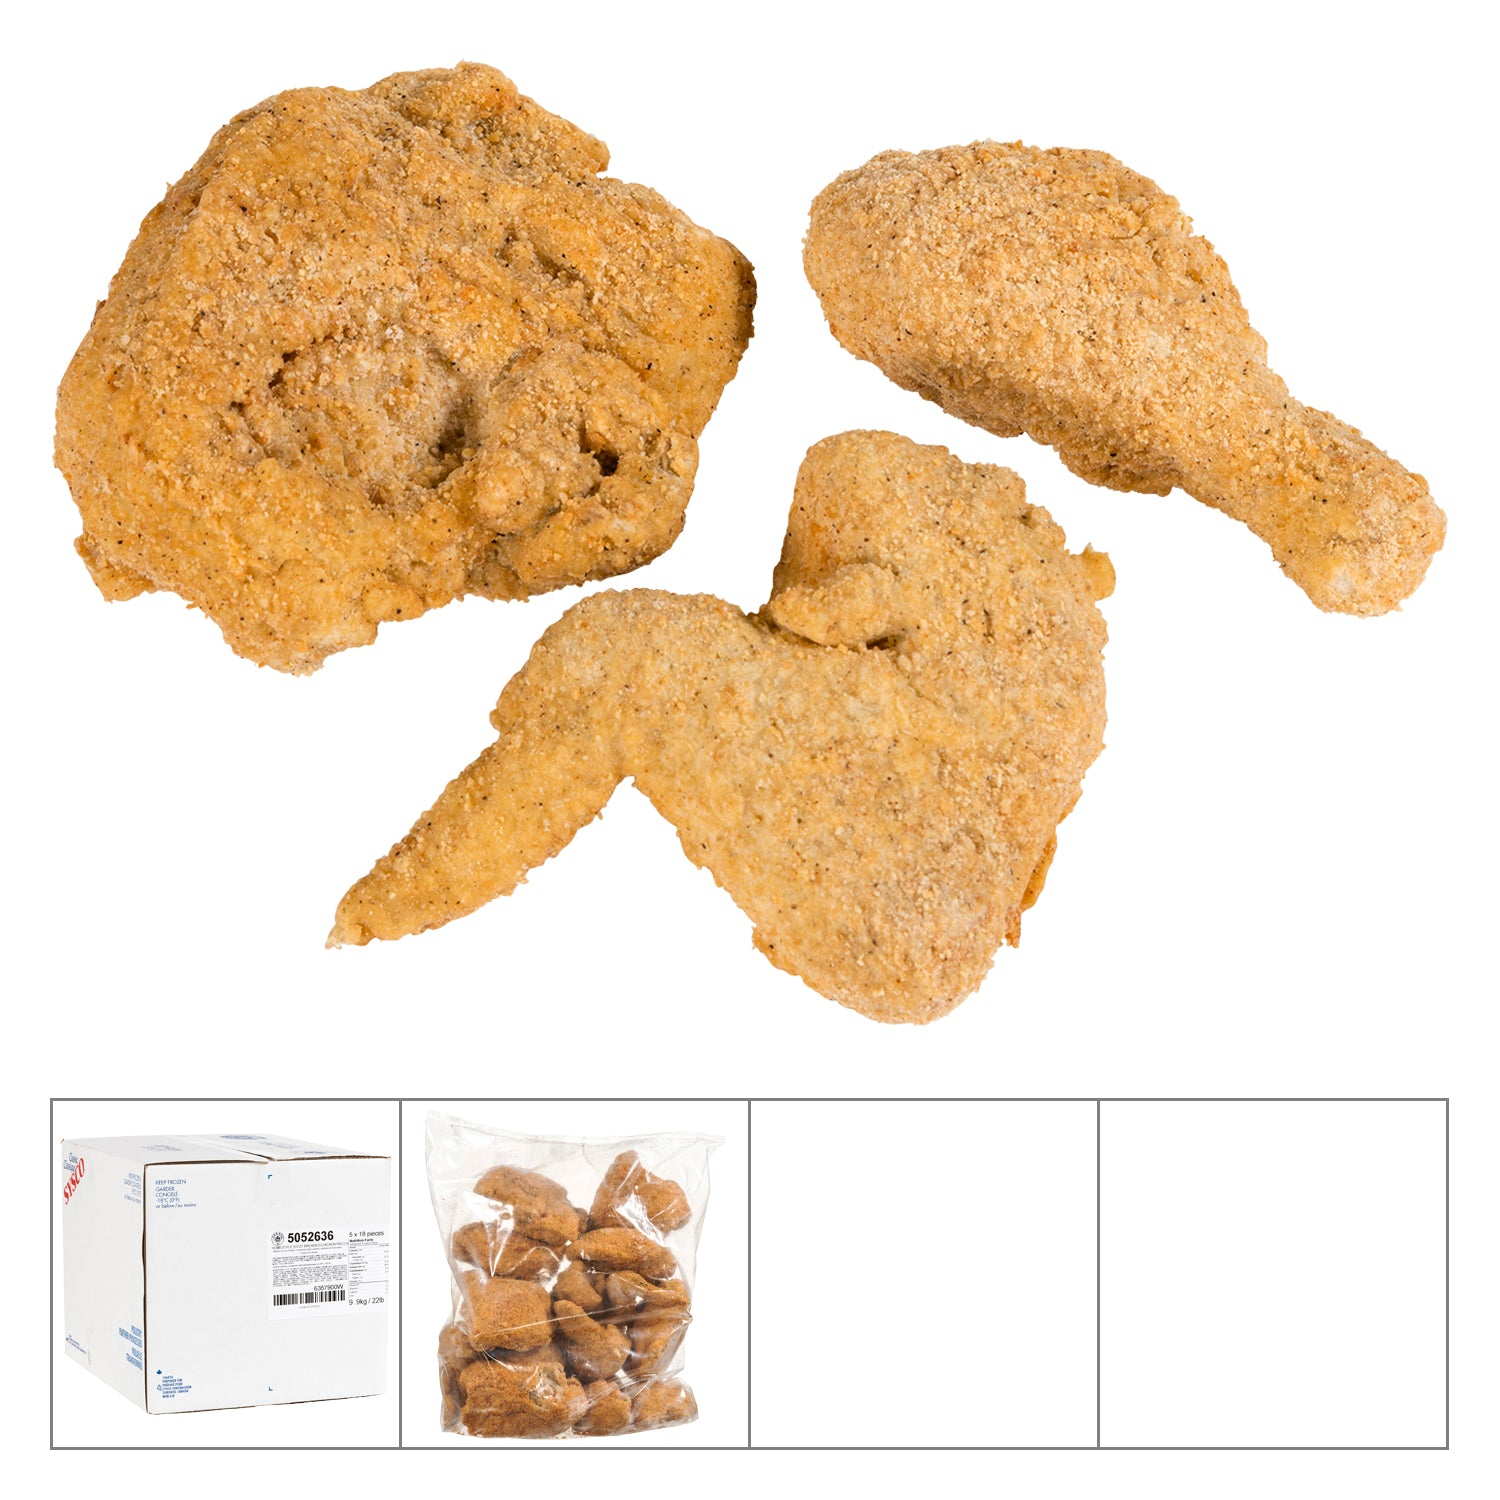 Sysco Classic Frozen Southern Fried Chicken 18 pcs Fully Cooked - 4 Pack [$13.64/kg]